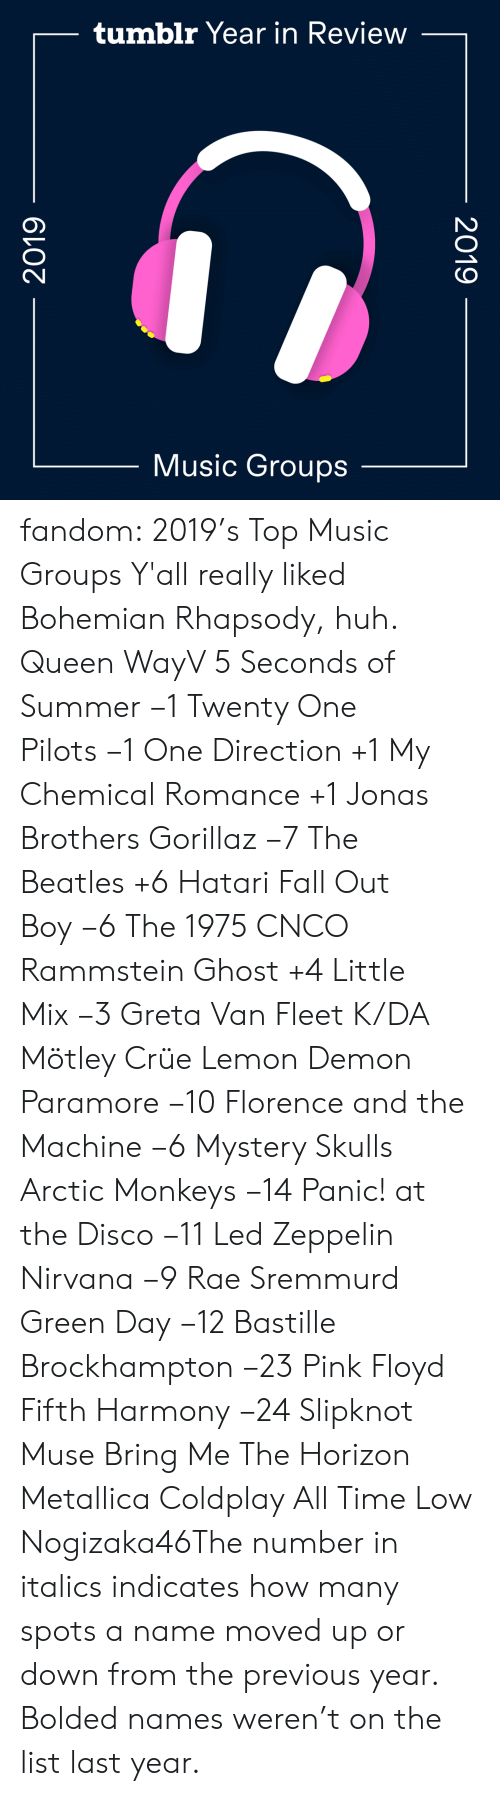 brothers: tumblr Year in Review  Music Groups  2019  2019 fandom:  2019's Top Music Groups  Y'all really liked Bohemian Rhapsody, huh.  Queen  WayV  5 Seconds of Summer −1  Twenty One Pilots −1  One Direction +1  My Chemical Romance +1  Jonas Brothers  Gorillaz −7  The Beatles +6  Hatari  Fall Out Boy −6  The 1975  CNCO  Rammstein  Ghost +4  Little Mix −3  Greta Van Fleet  K/DA  Mötley Crüe  Lemon Demon  Paramore −10  Florence and the Machine −6  Mystery Skulls  Arctic Monkeys −14  Panic! at the Disco −11  Led Zeppelin   Nirvana −9  Rae Sremmurd  Green Day −12  Bastille  Brockhampton −23  Pink Floyd  Fifth Harmony −24  Slipknot  Muse  Bring Me The Horizon  Metallica  Coldplay  All Time Low  Nogizaka46The number in italics indicates how many spots a name moved up or down from the previous year. Bolded names weren't on the list last year.